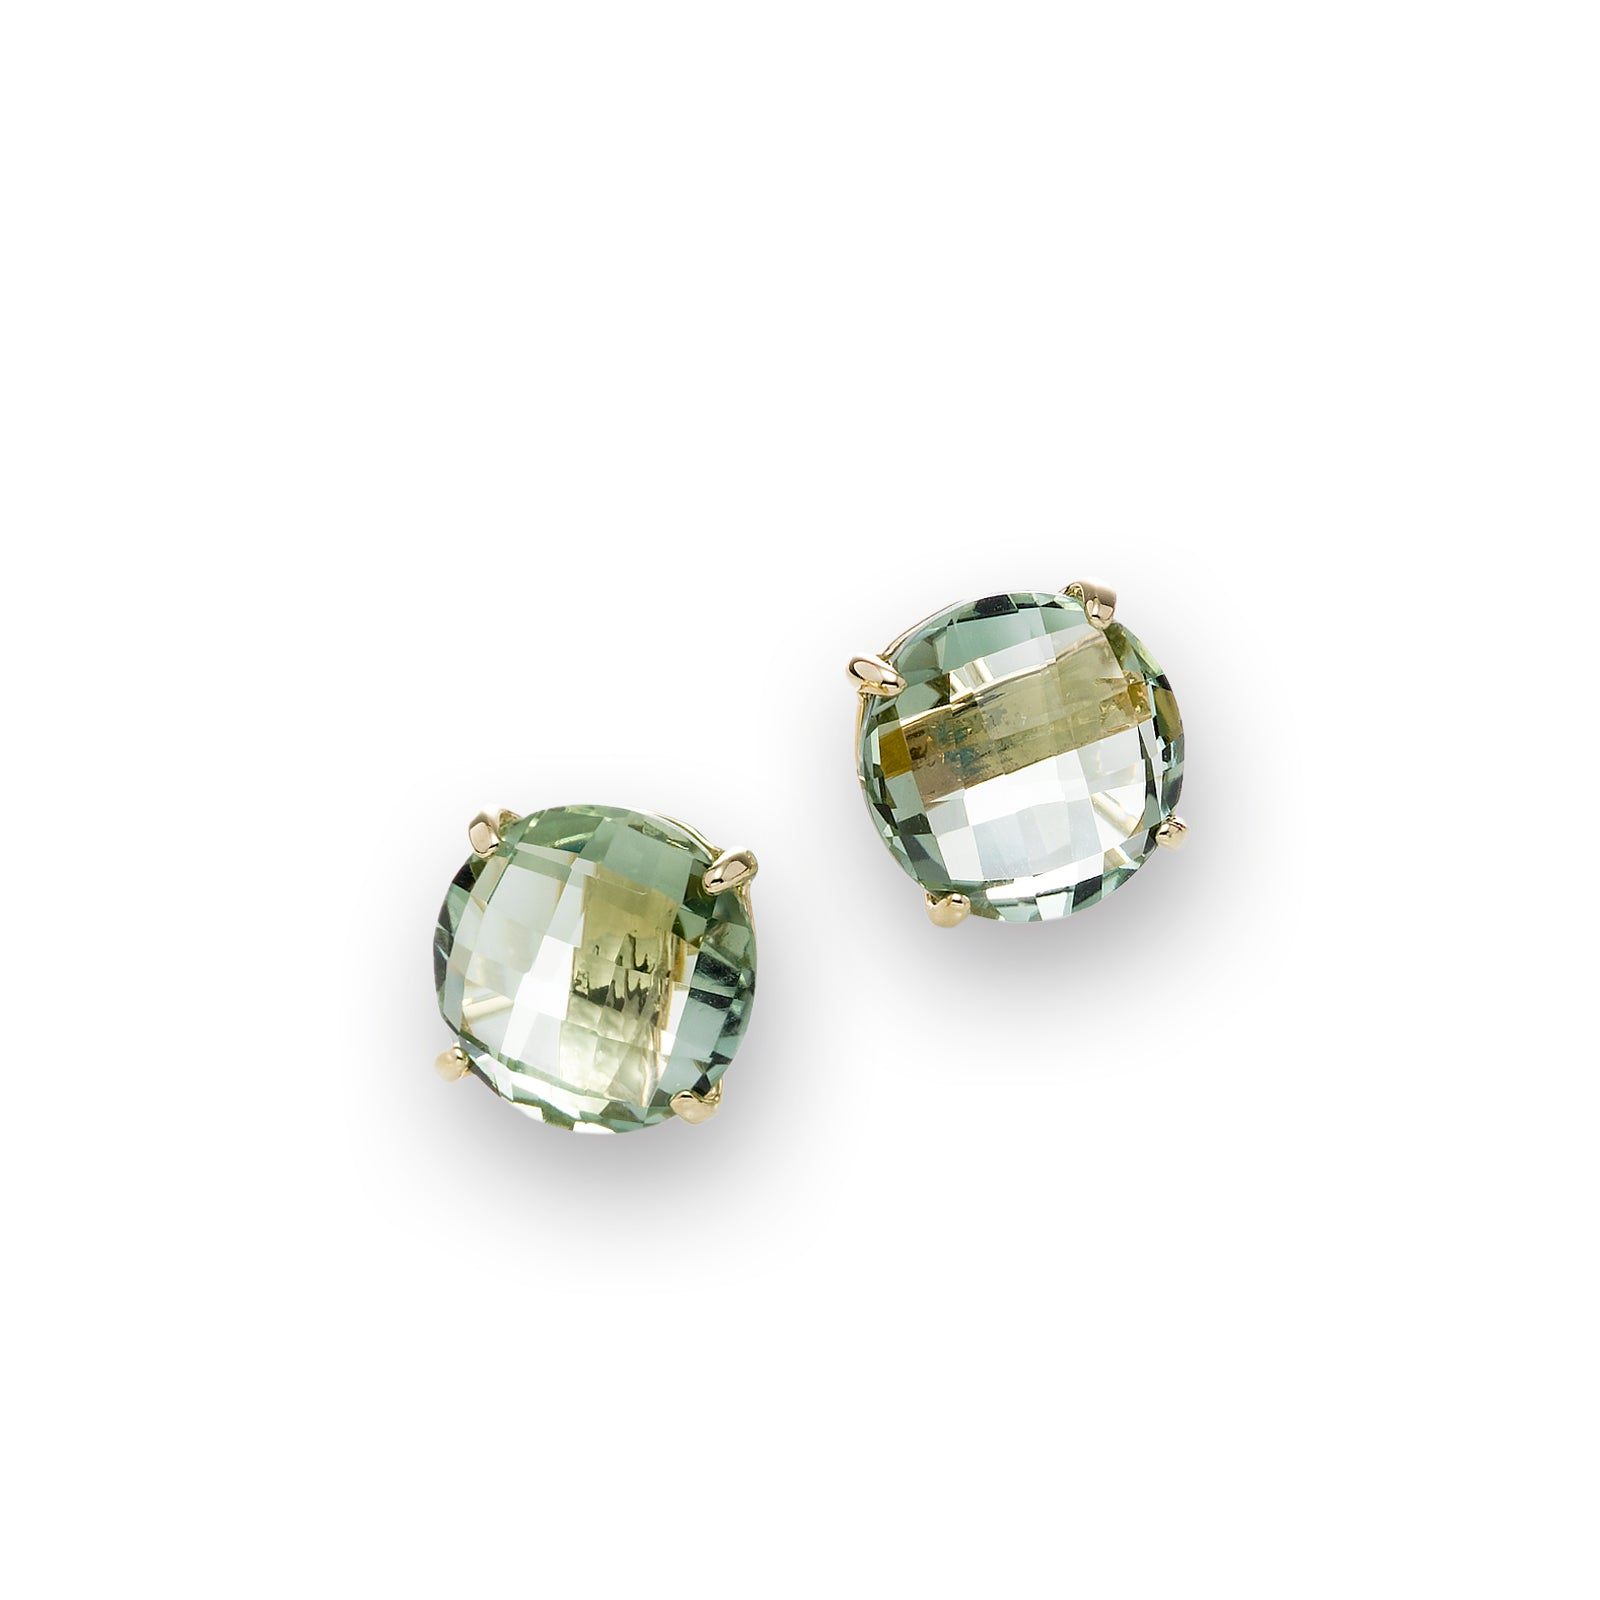 Round Prasiolite Stud Earrings, 14K Yellow Gold